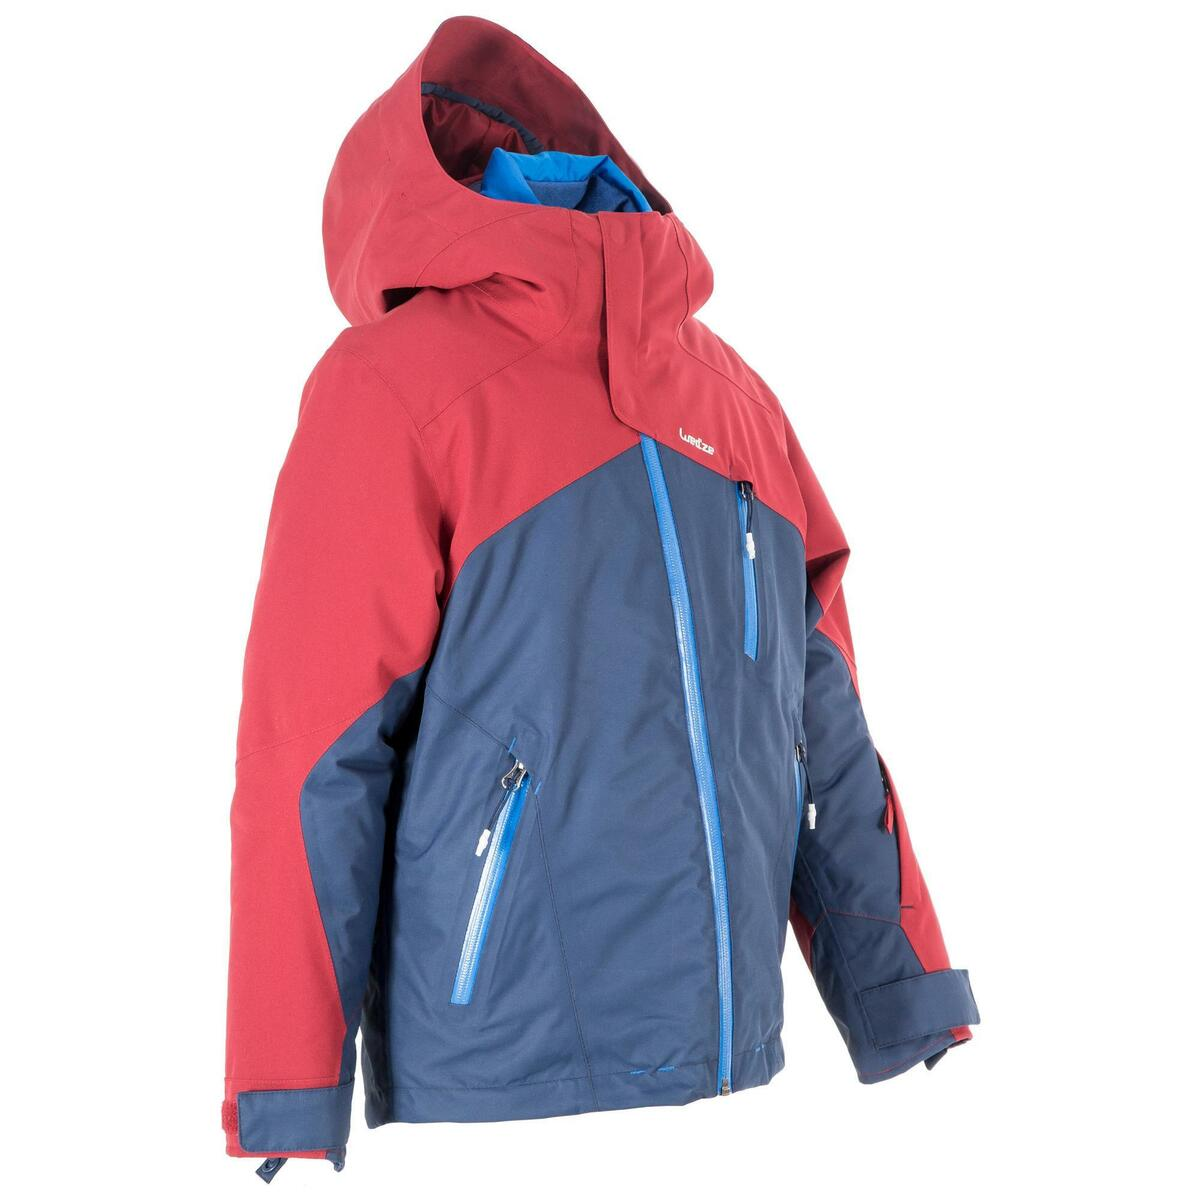 Bild 2 von Skijacke All Mountain Kinder 990 blau bordeaux